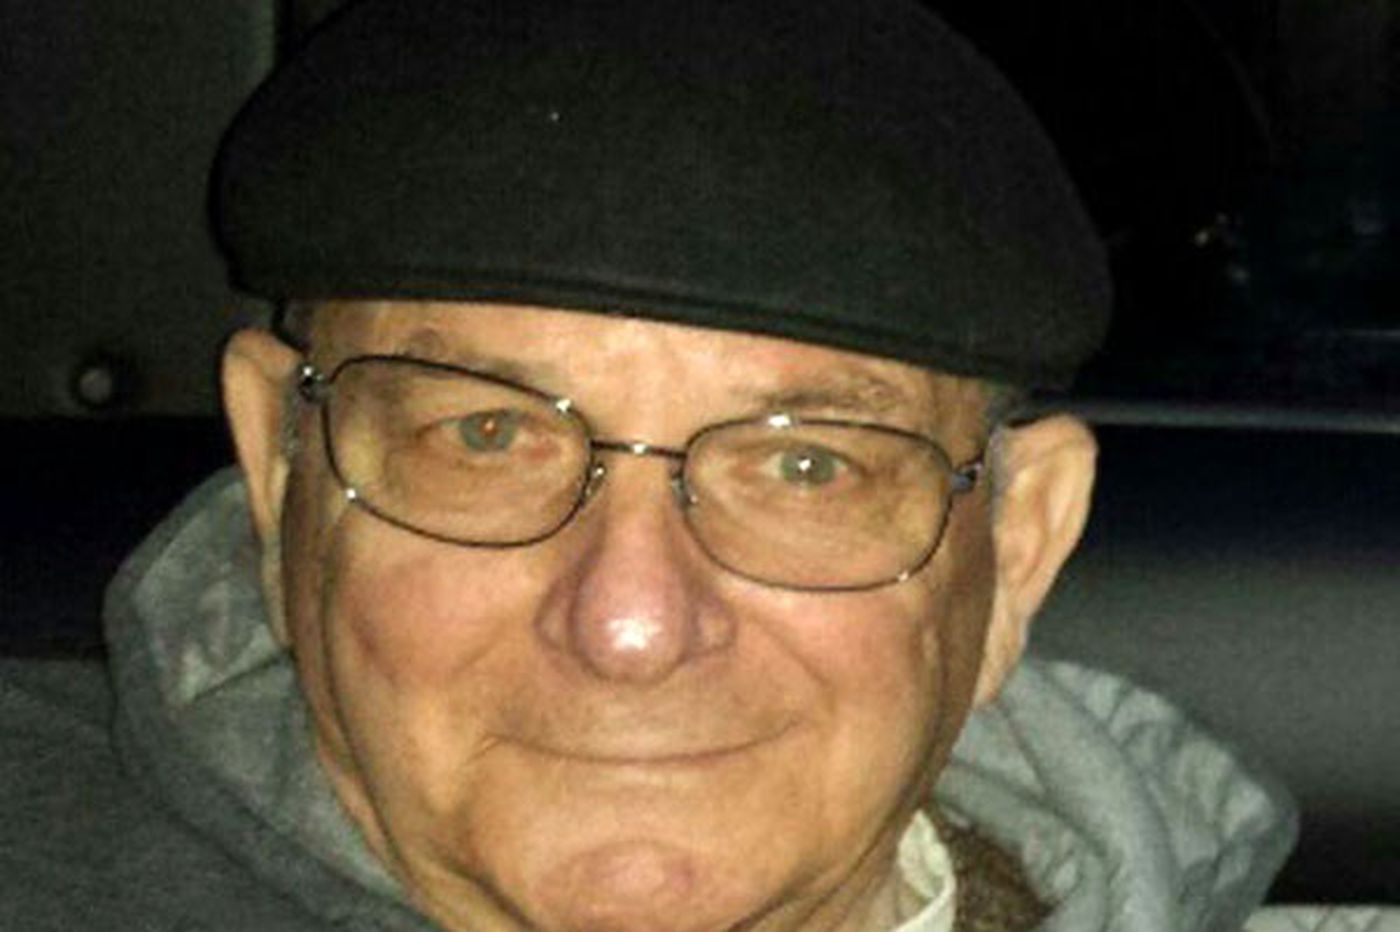 Louis Voci Sr., 78, circulation supervisor for Daily News and Inquirer